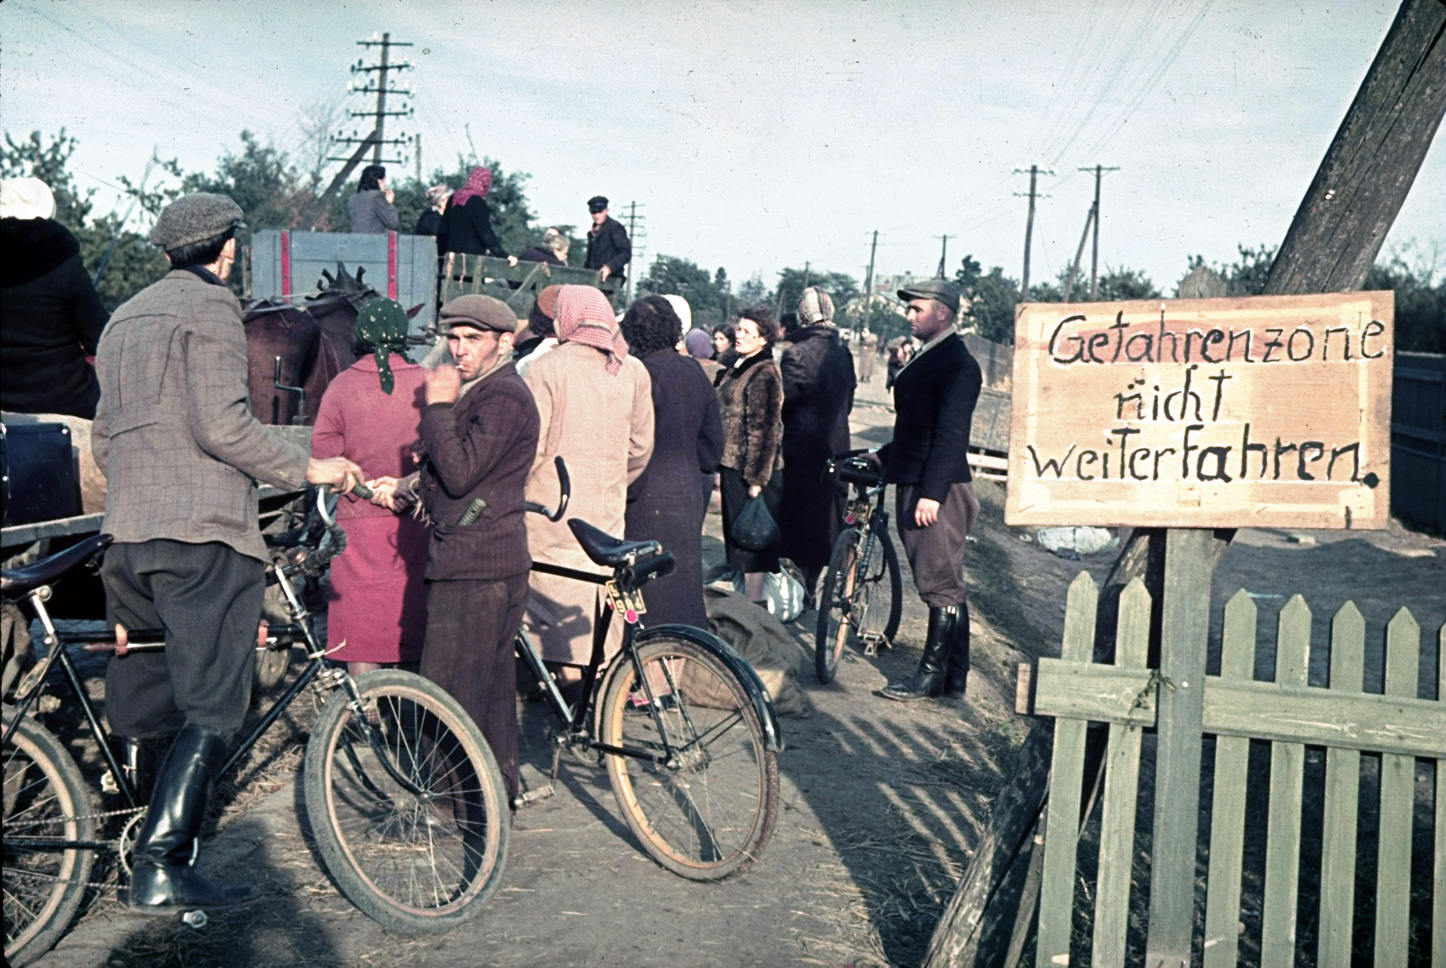 Refugees near Warsaw during the 1939 German invasion of Poland